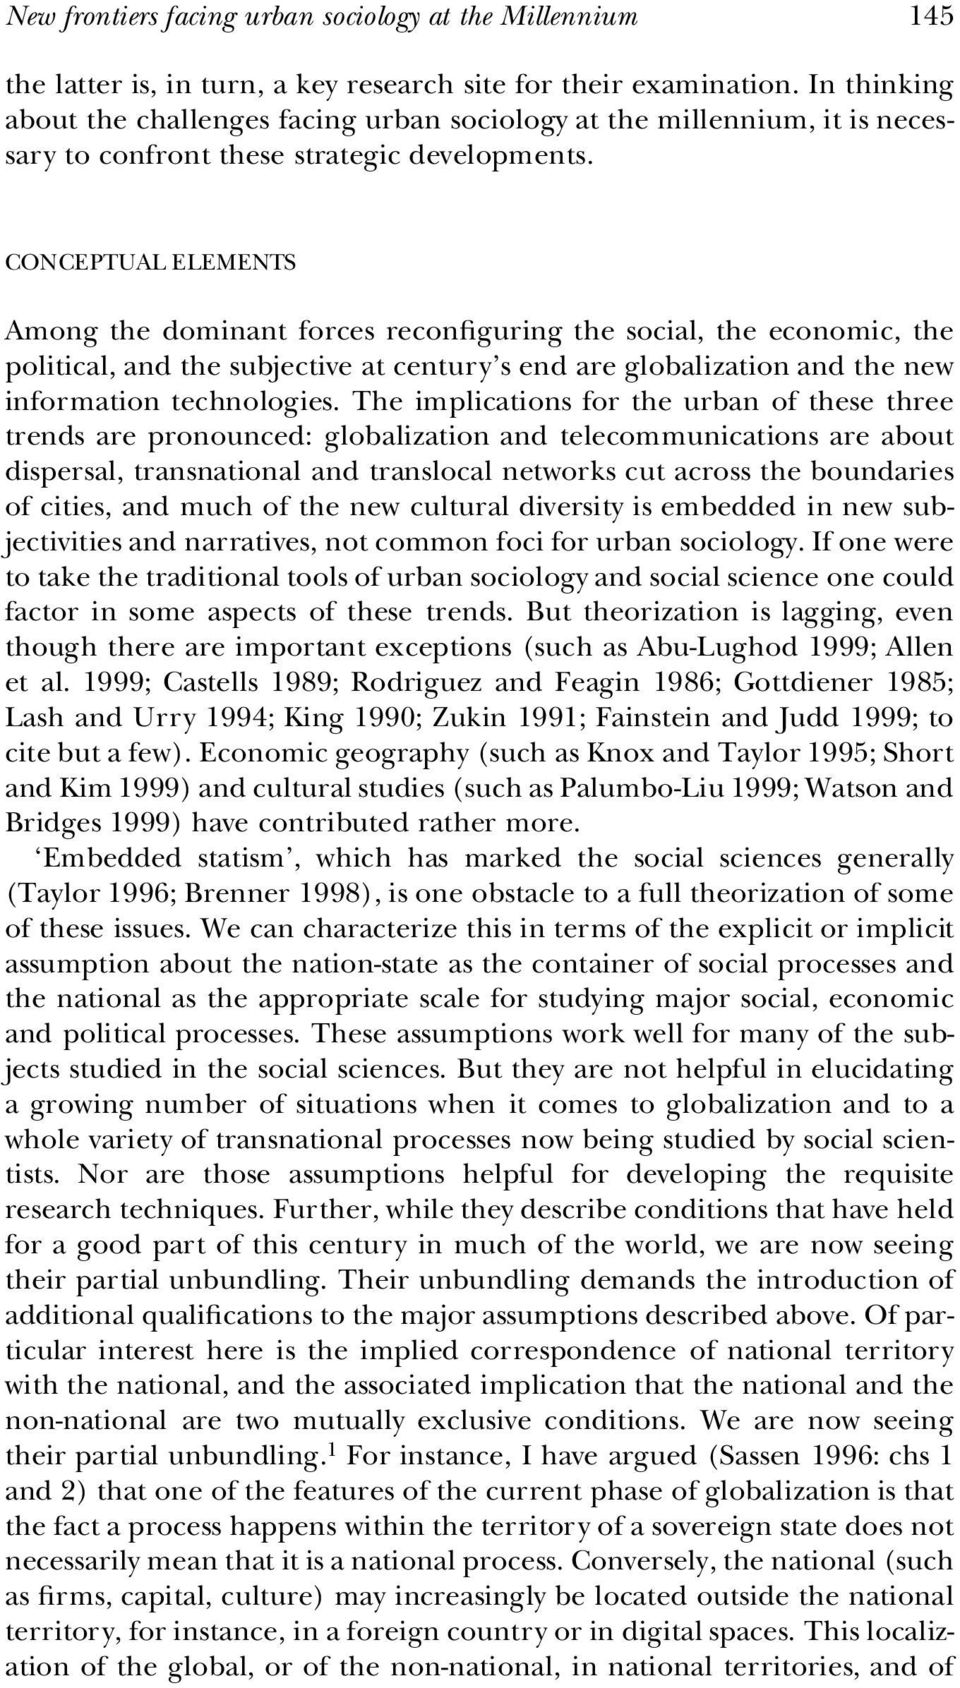 CONCEPTUAL ELEMENTS Among the dominant forces recon guring the social, the economic, the political, and the subjective at century s end are globalization and the new information technologies.